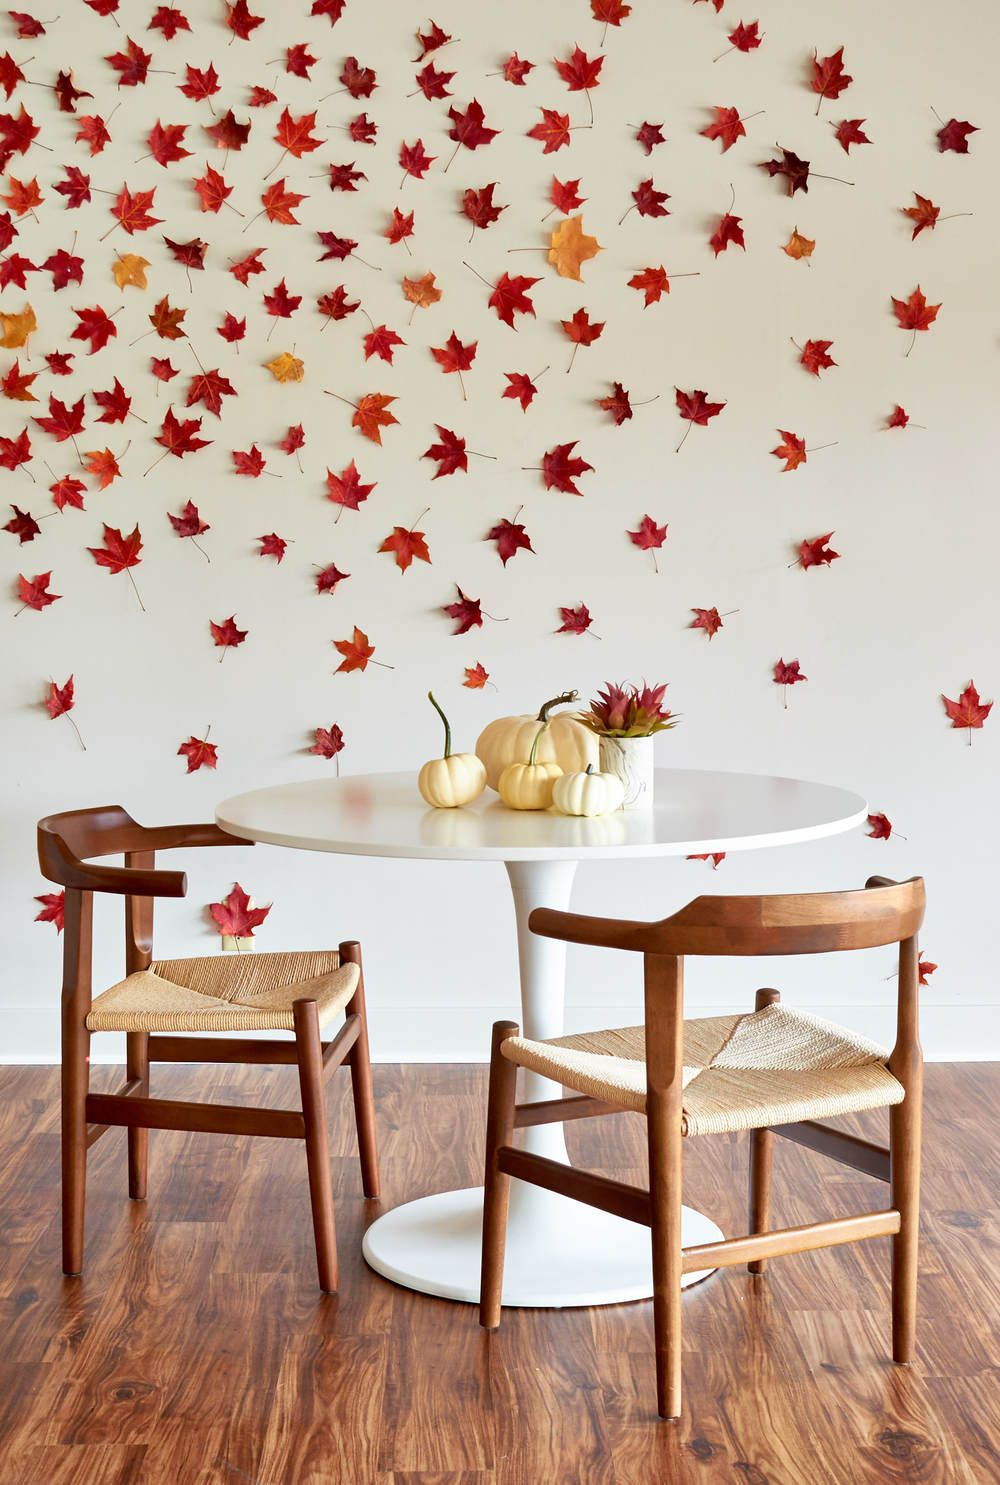 When Autumn Leaves Start To Wall Fall Wall Decor Diy Fall Wall Decor Fall Leaf Decor